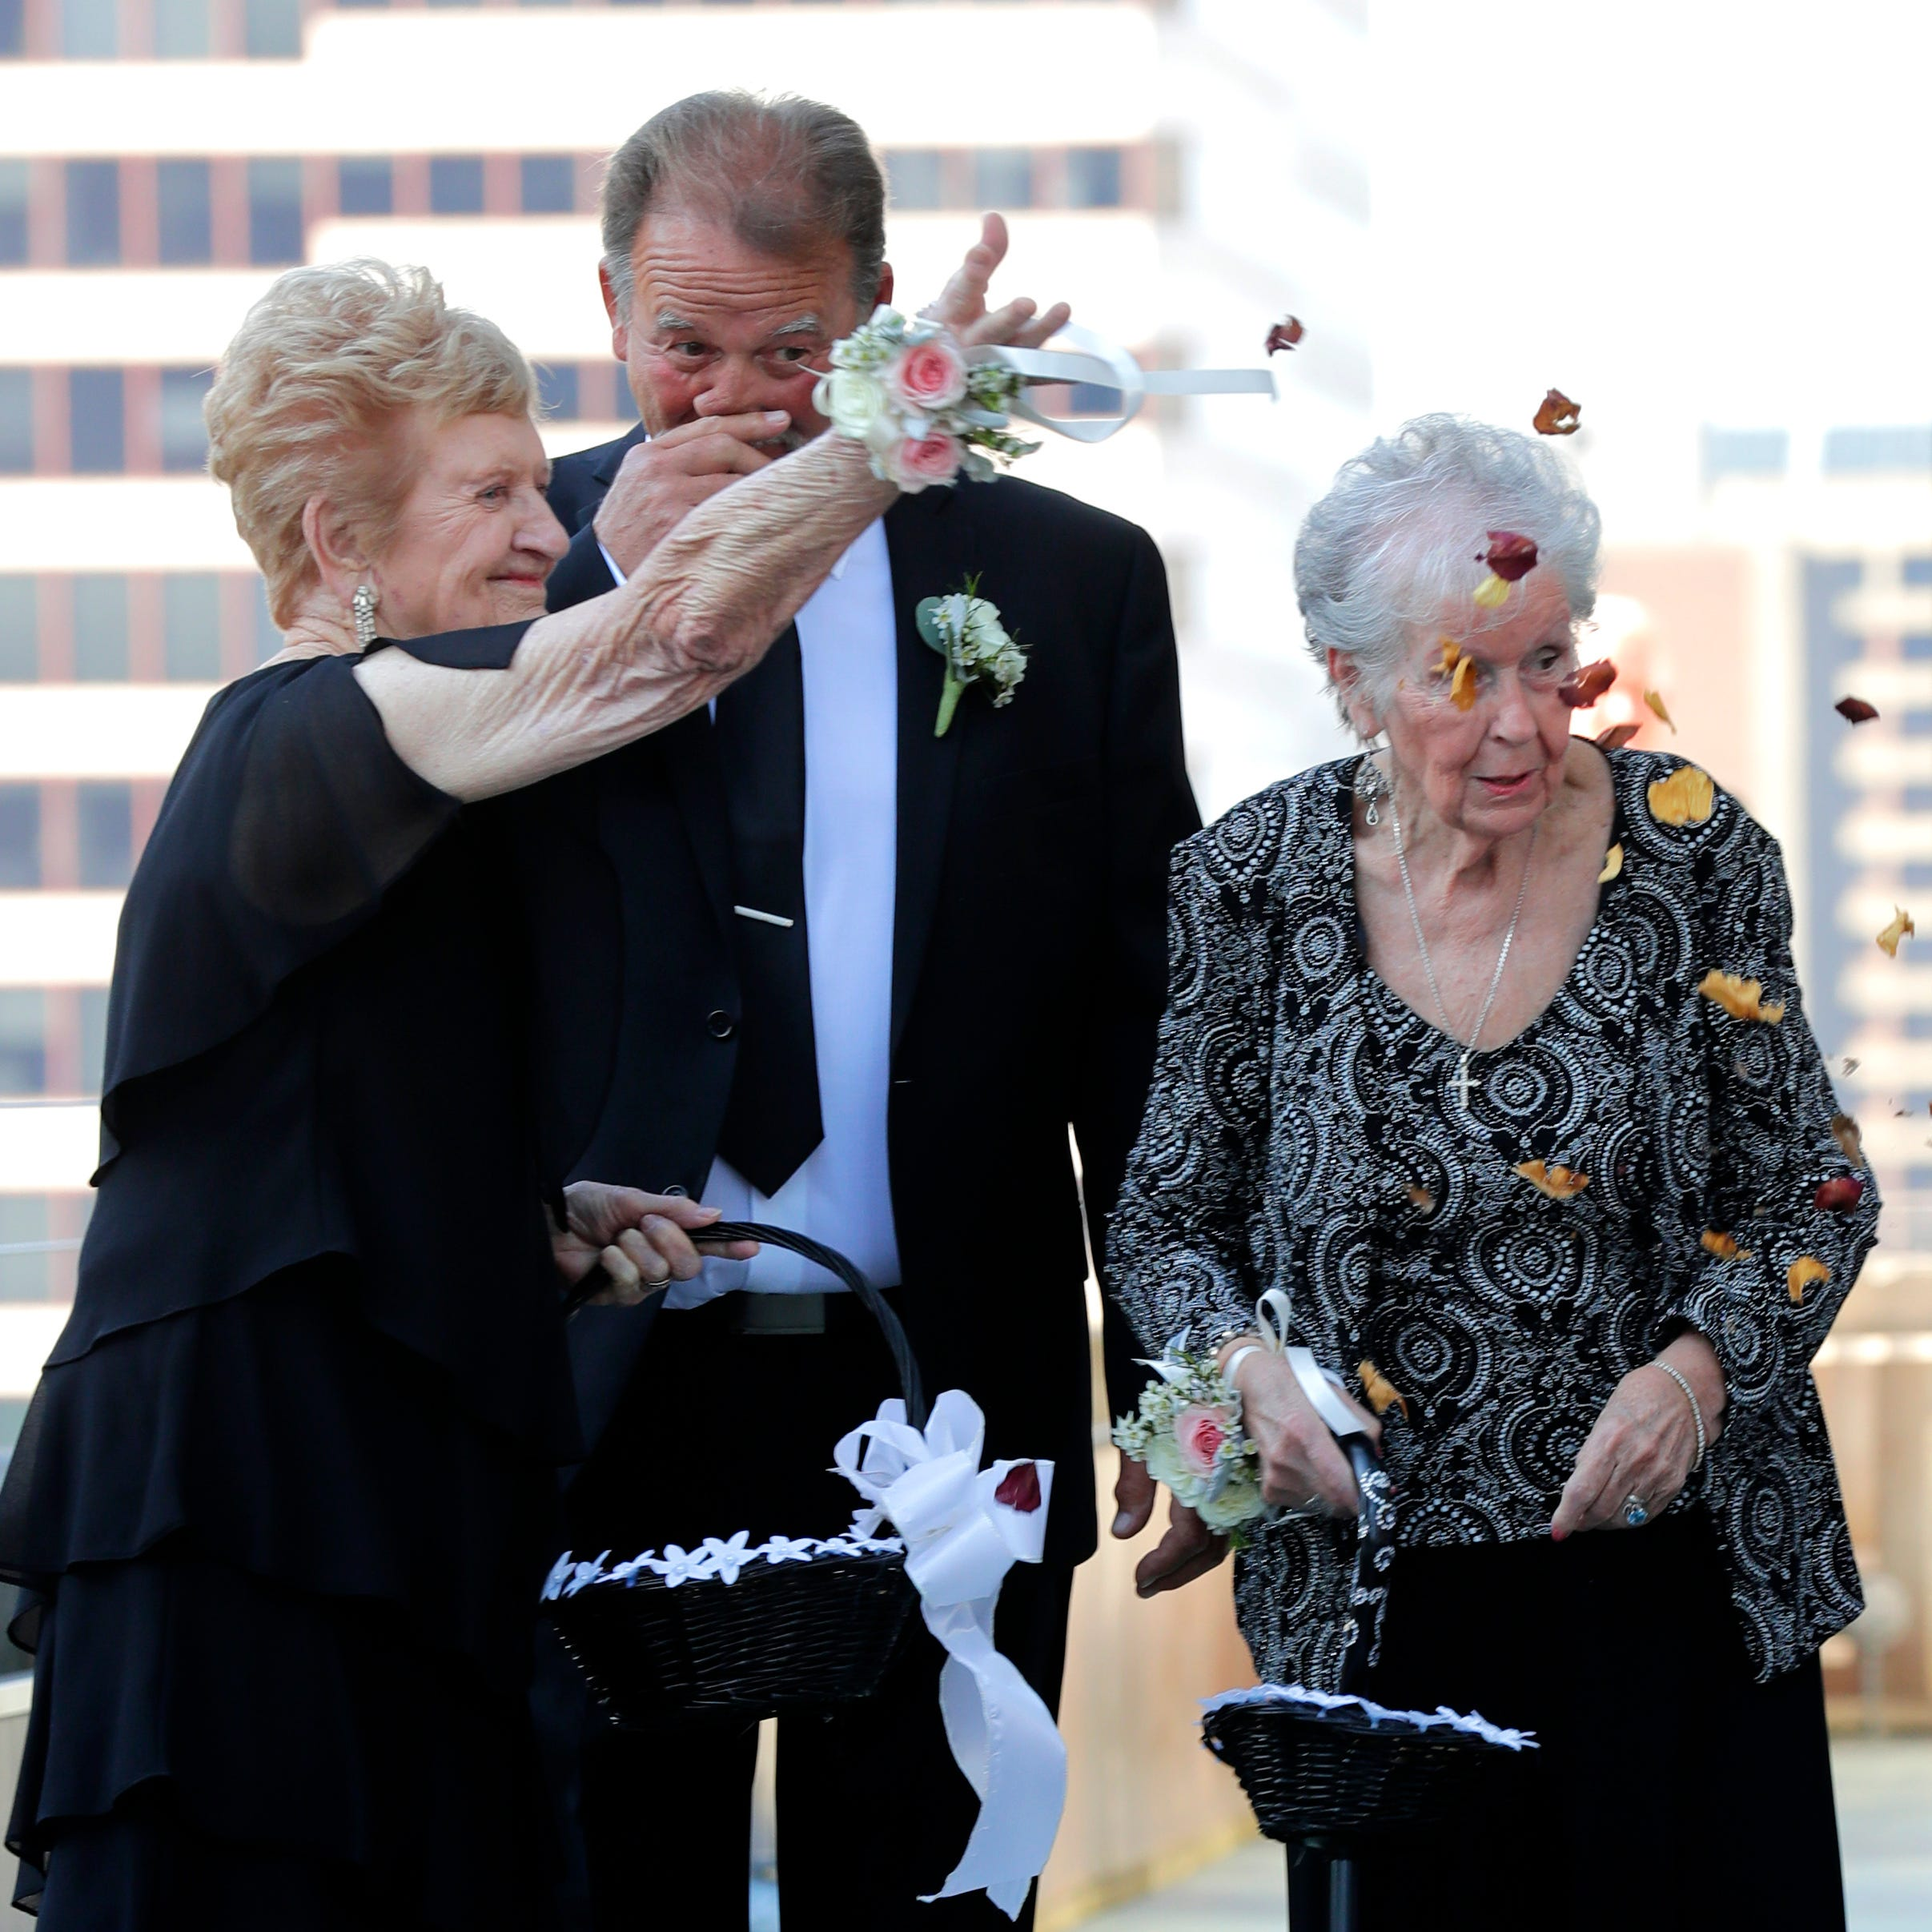 Stingl: Grandmas are wedding flower girls. Wait till you hear where the rose petals came from.